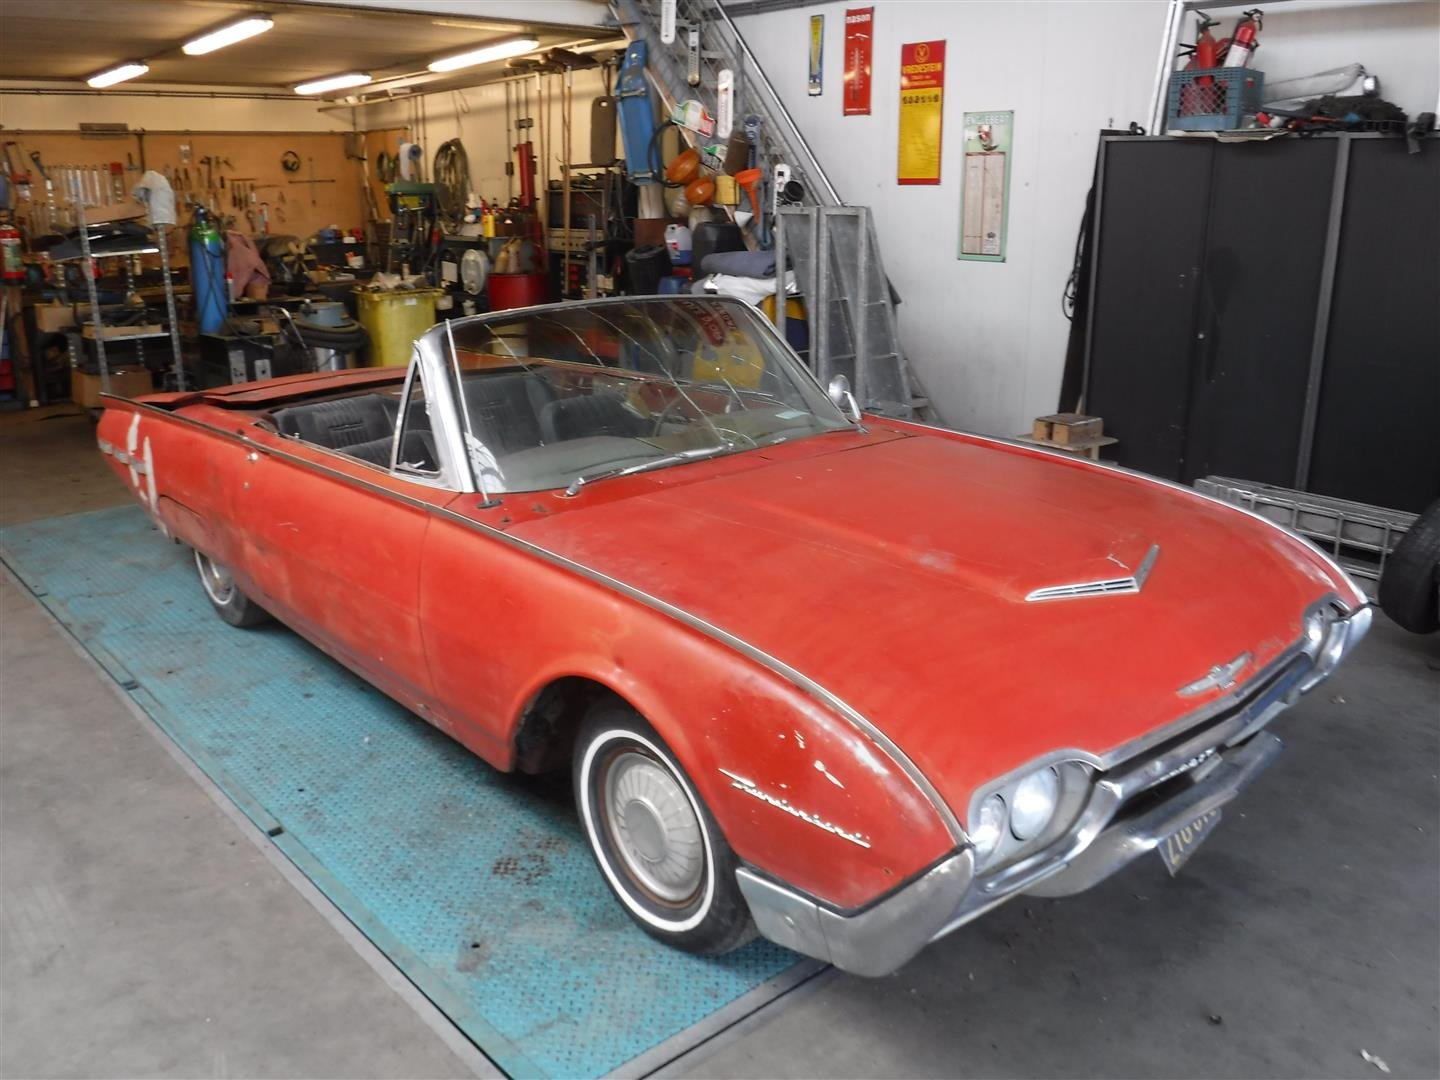 1950 Ford Thunderbird Convertible '50 (to restore) For Sale (picture 1 of 6)